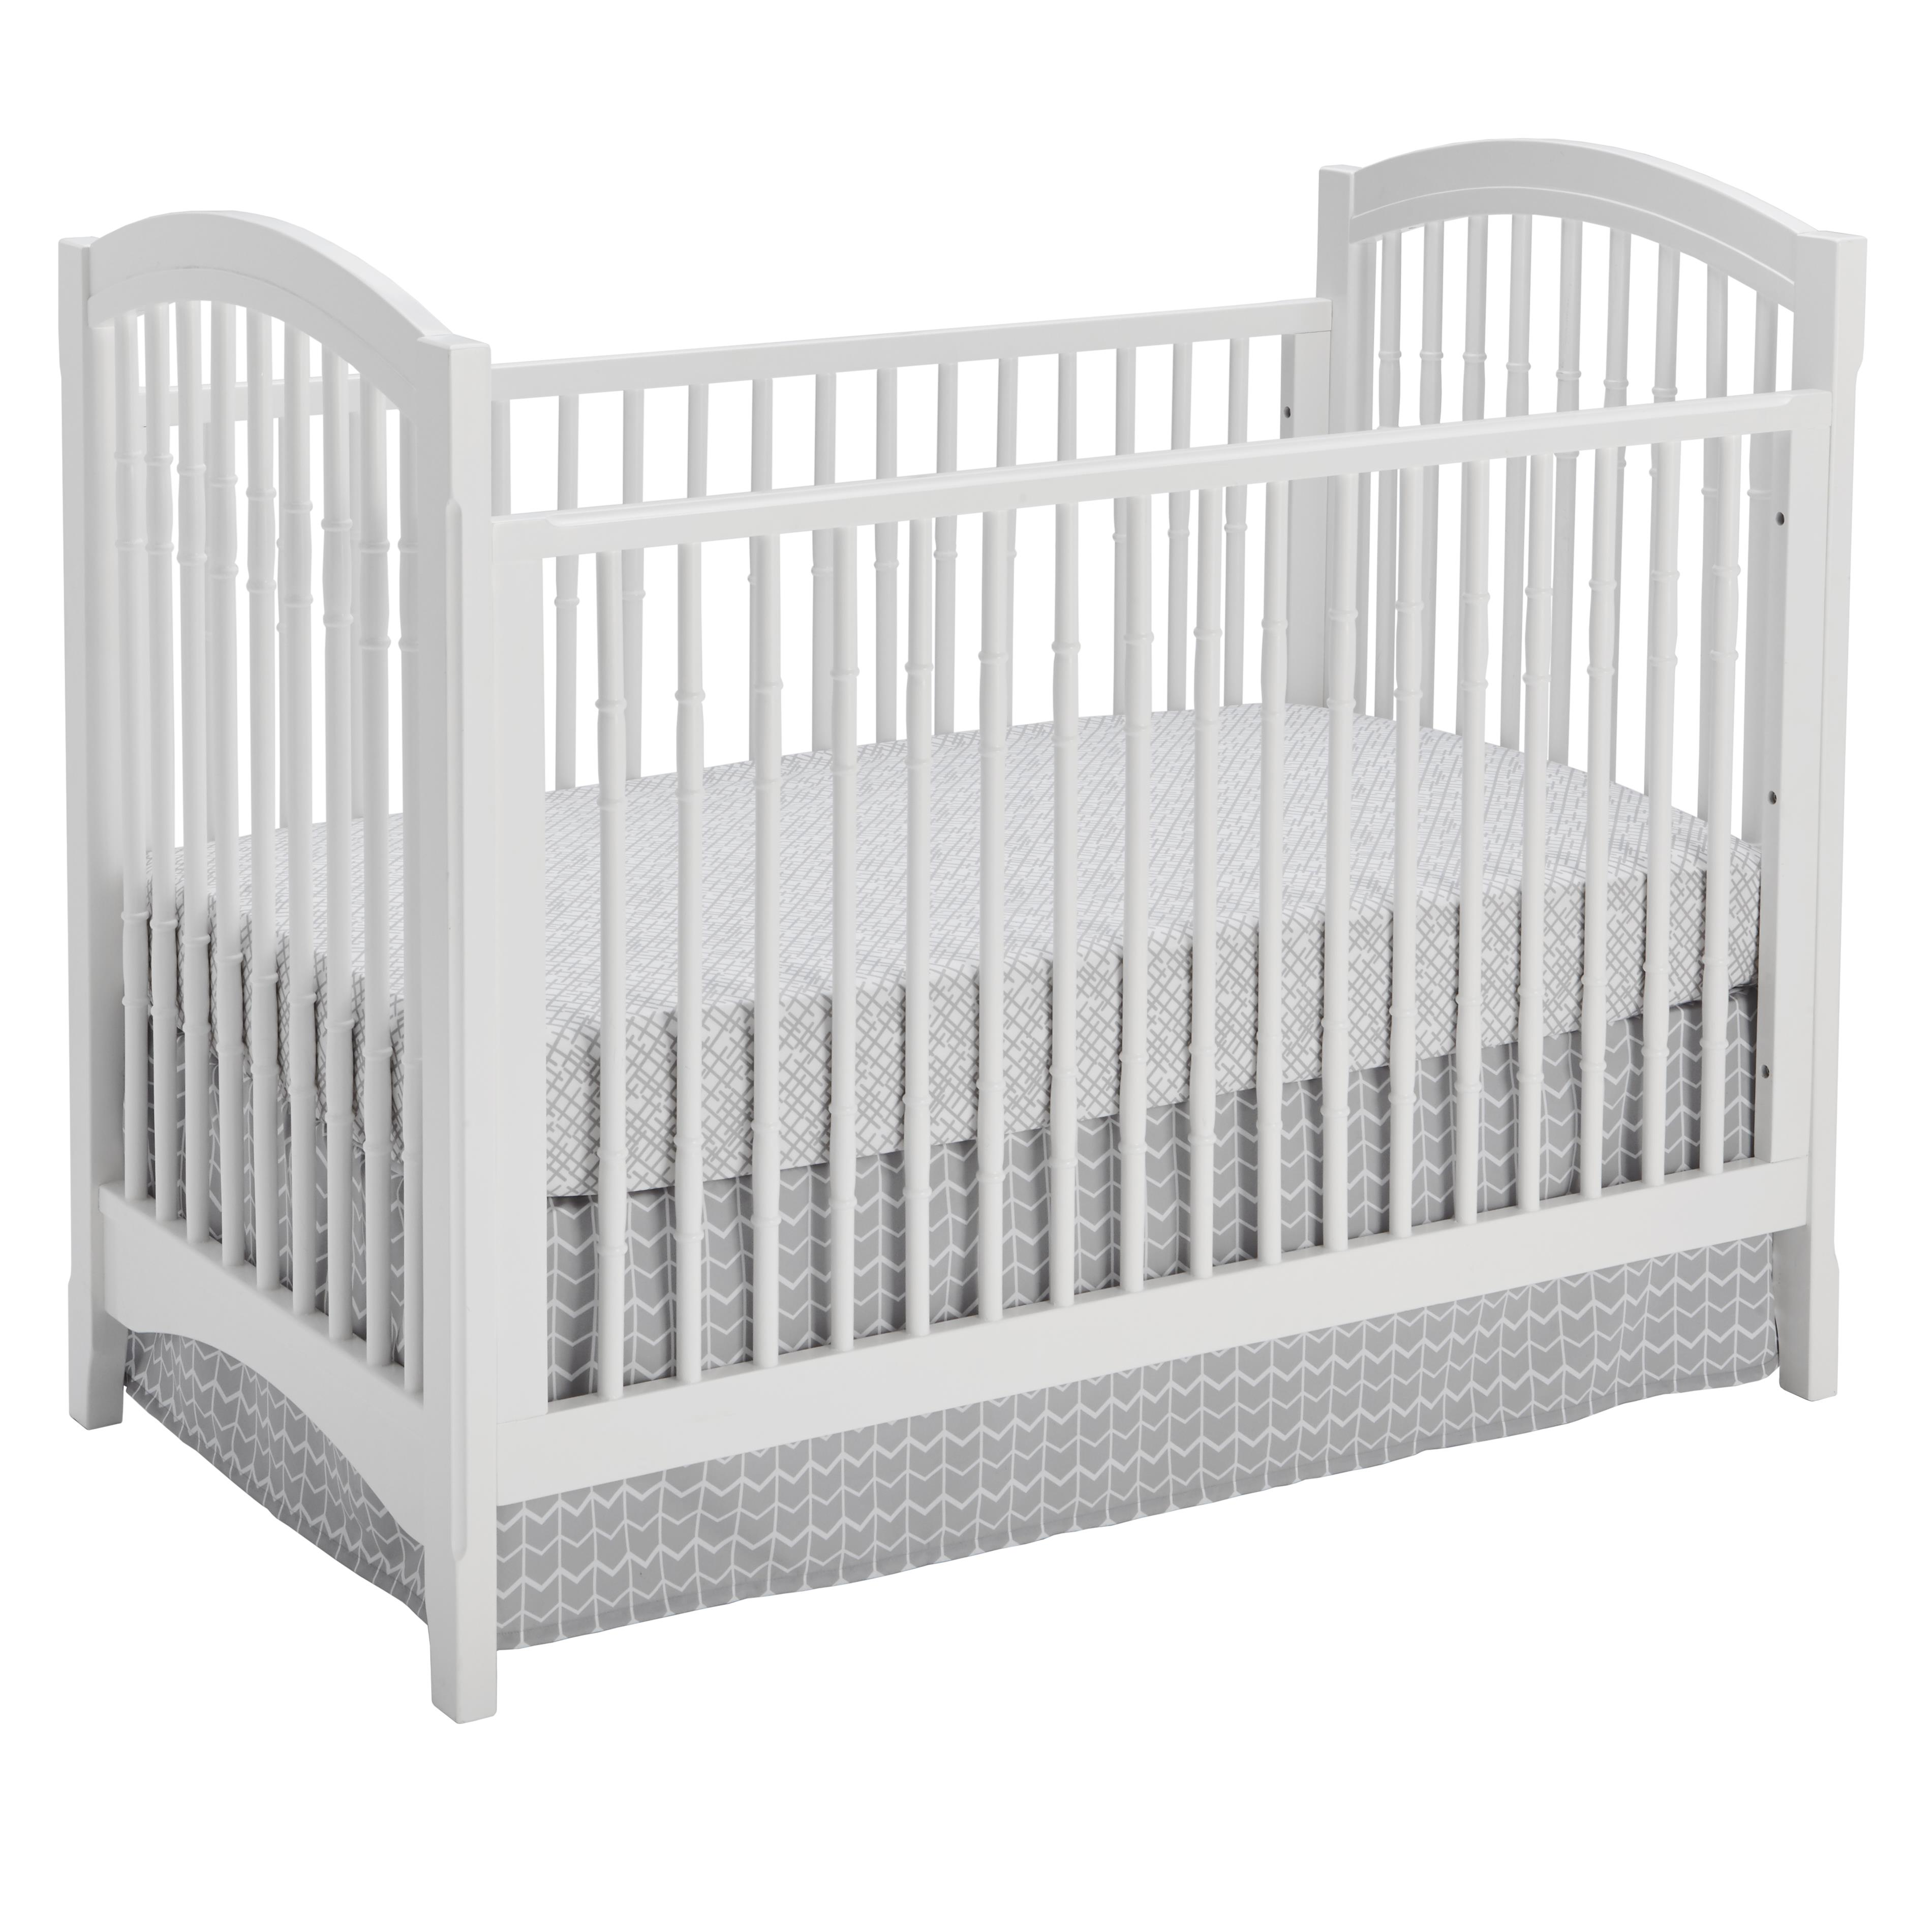 Sealy Batavia 3-In-1 Convertible Crib-Finish:White by Sealy